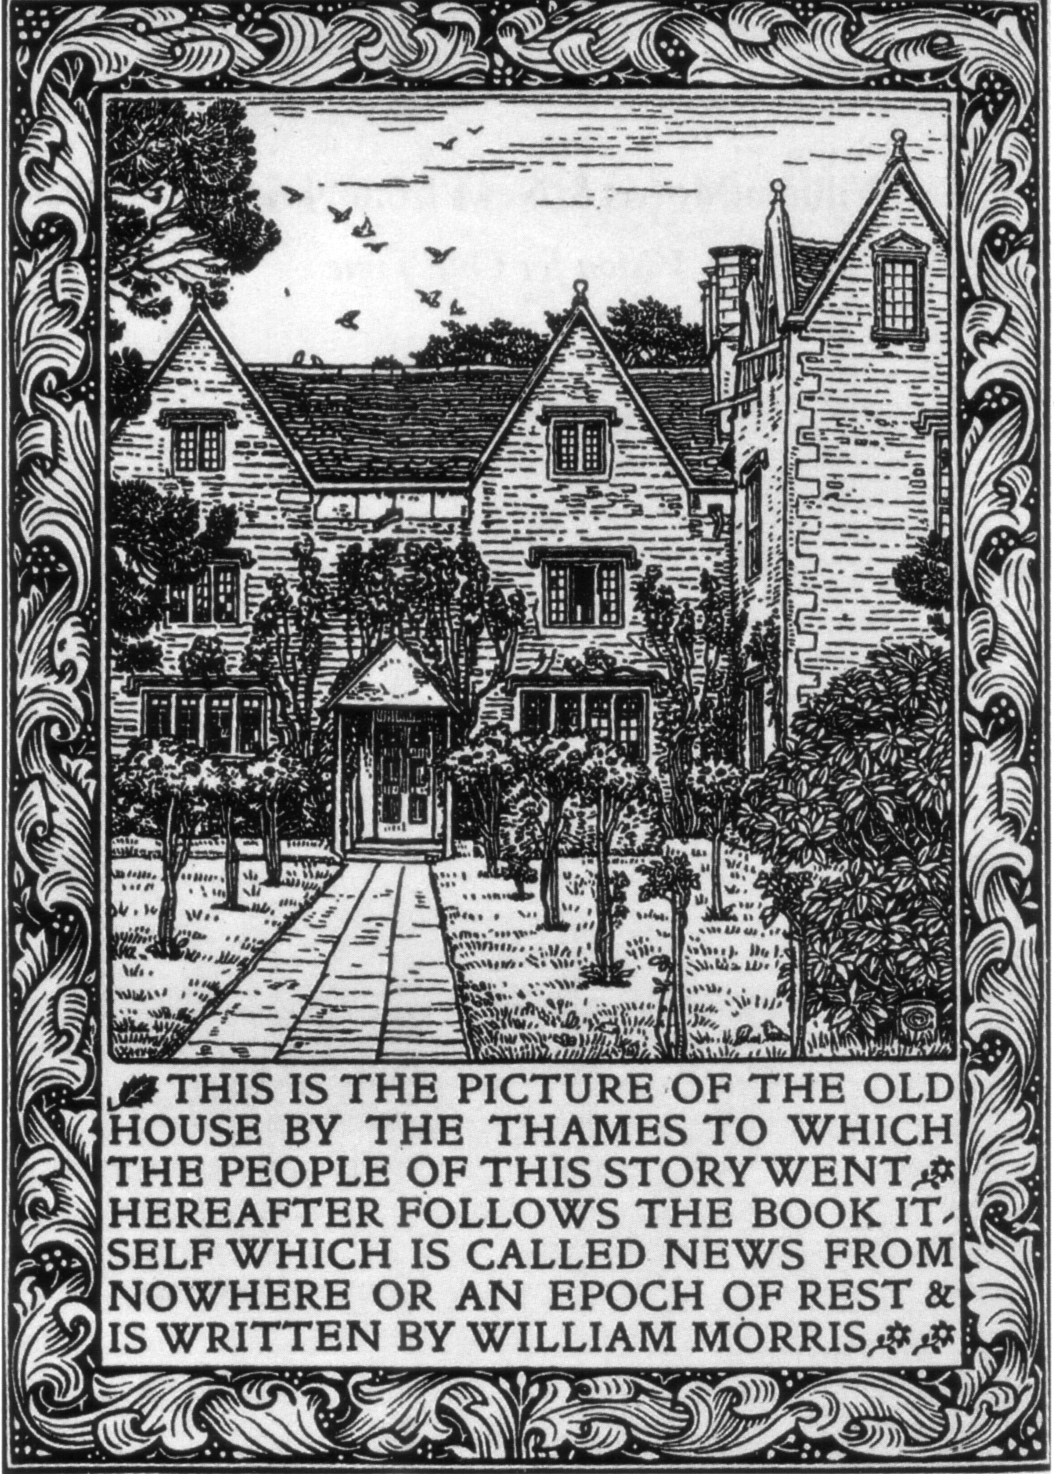 News from Nowhere, Kelmscott edition frontispiece